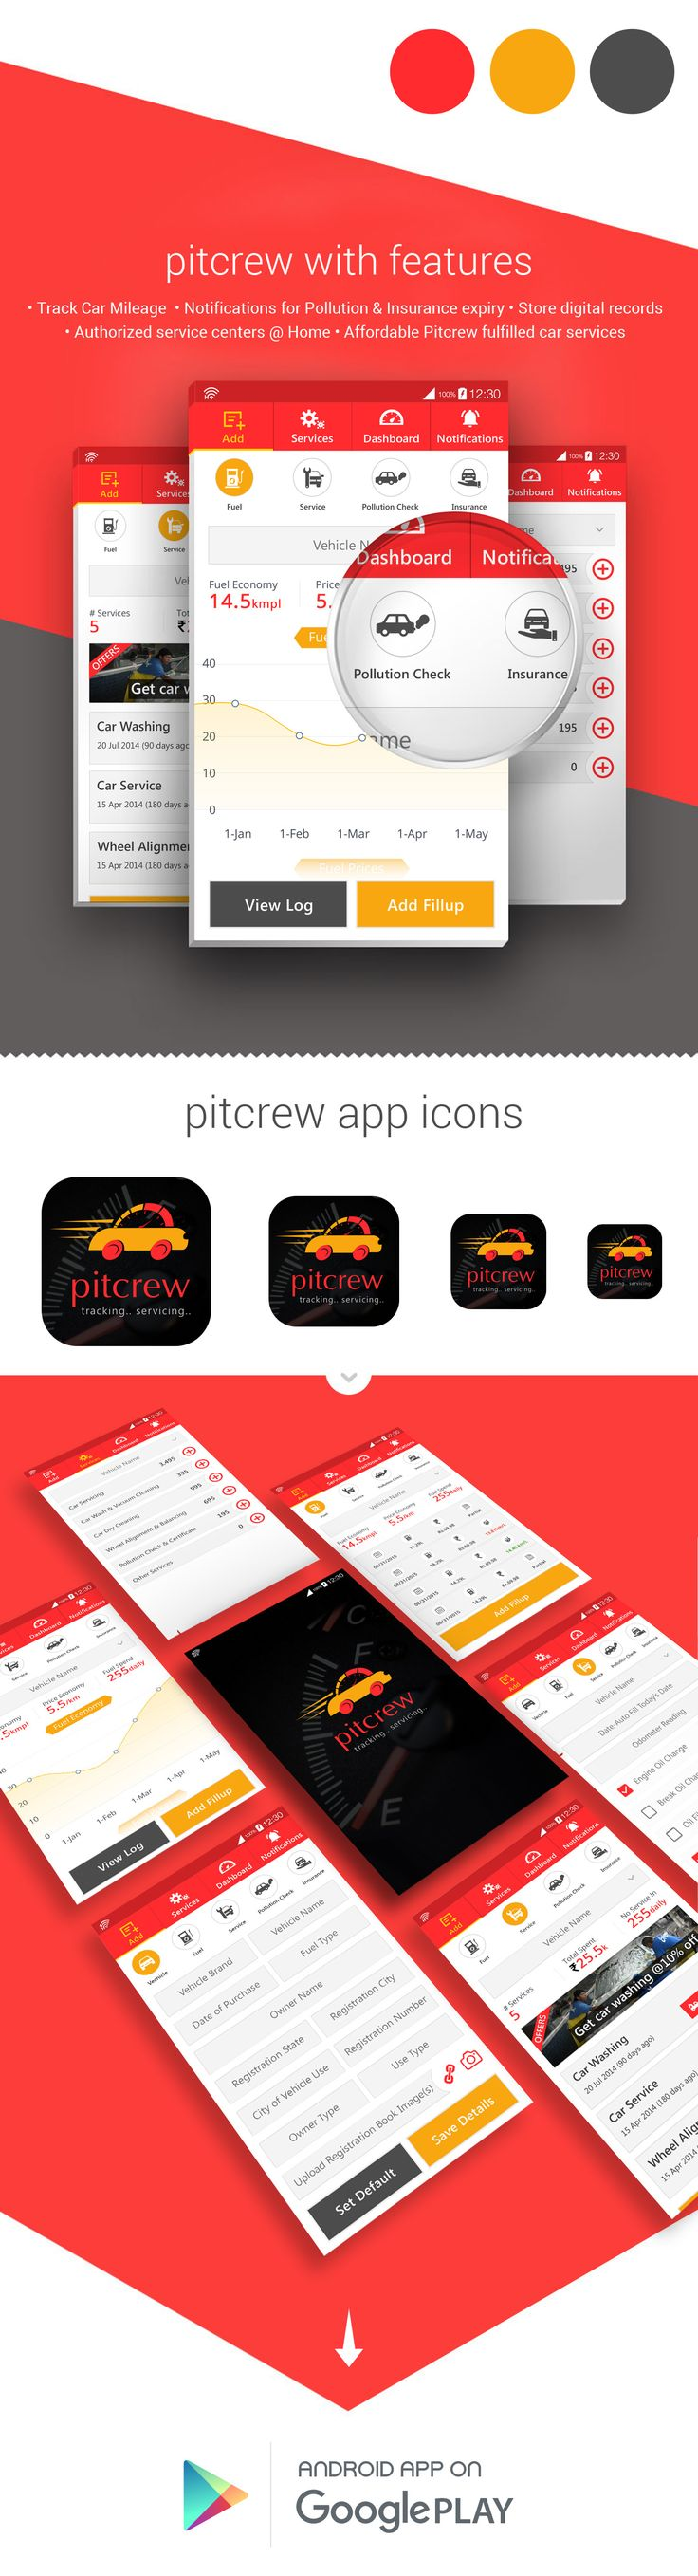 "查看此 @Behance 项目:""Pitcrew is a car servicing & tracking app""https://www.behance.net/gallery/30969893/Pitcrew-is-a-car-servicing-tracking-app"